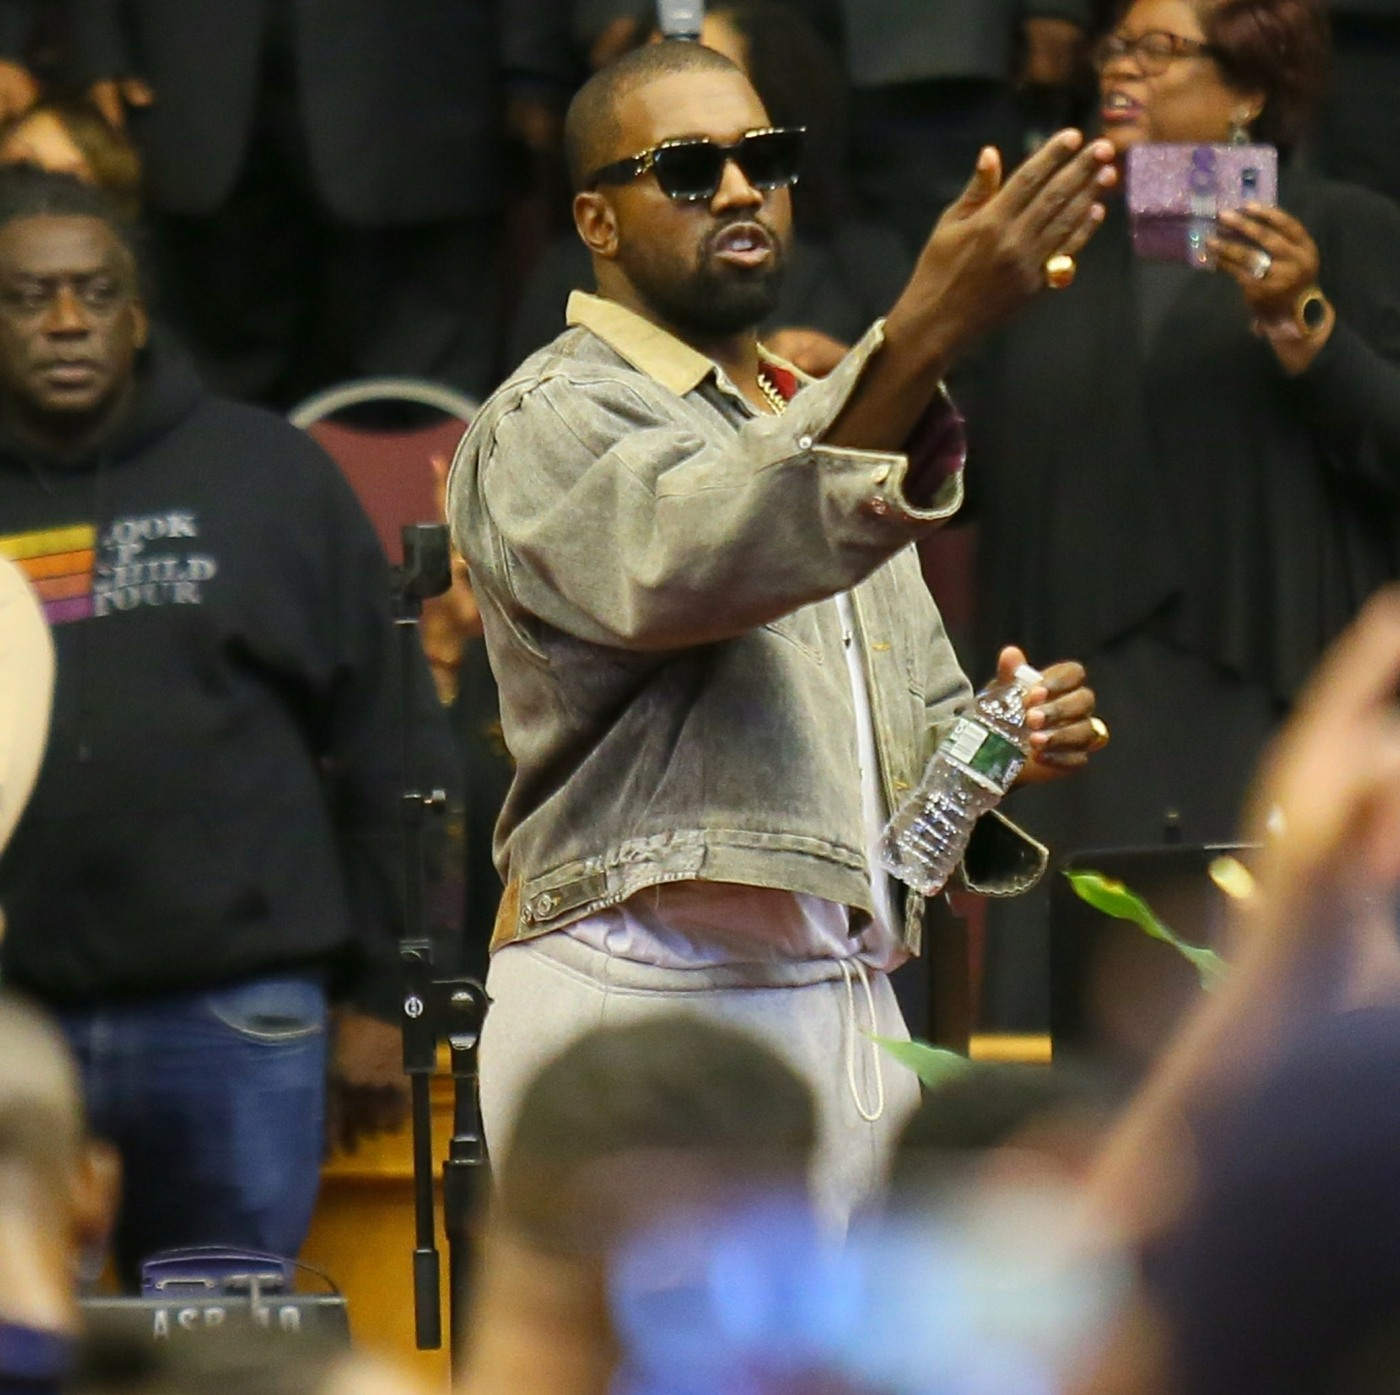 Kanye West and his family attend the Greater Allen AME Cathedral of New York for his Sunday service